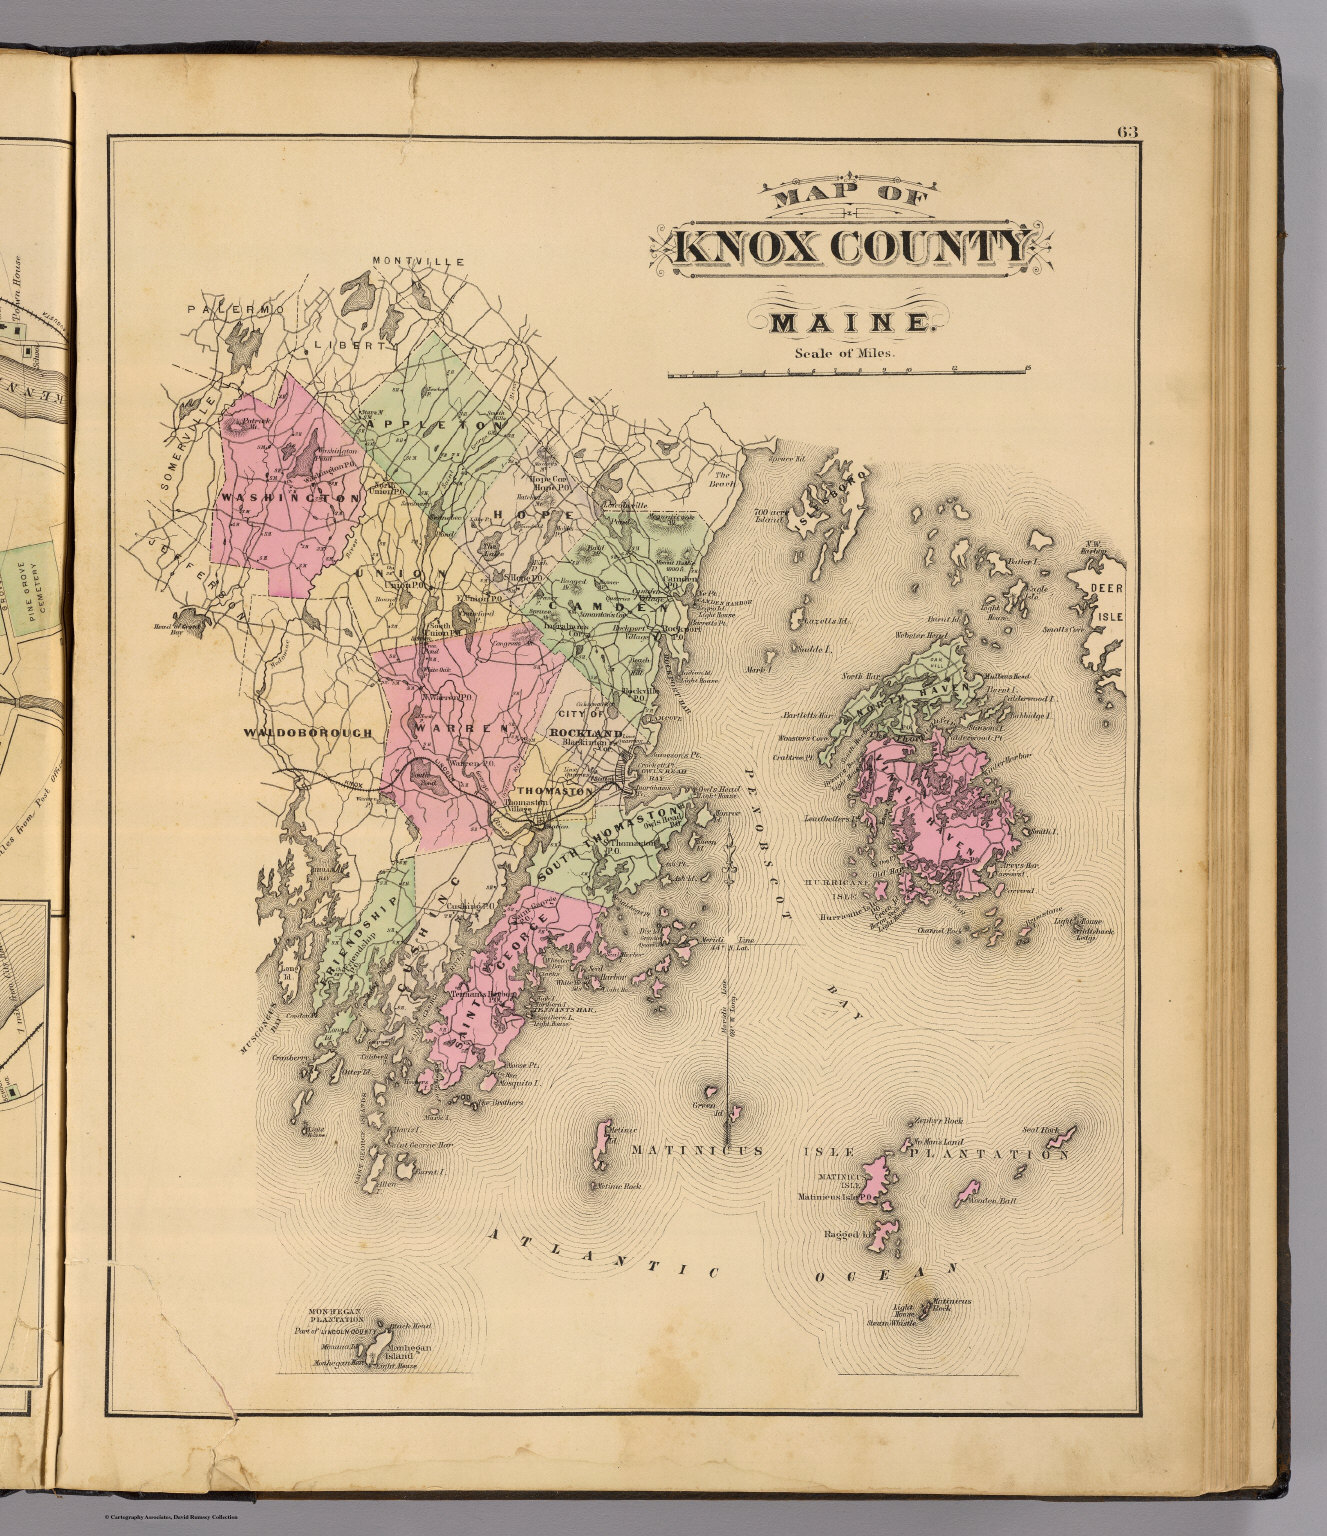 Knox Co Maine David Rumsey Historical Map Collection